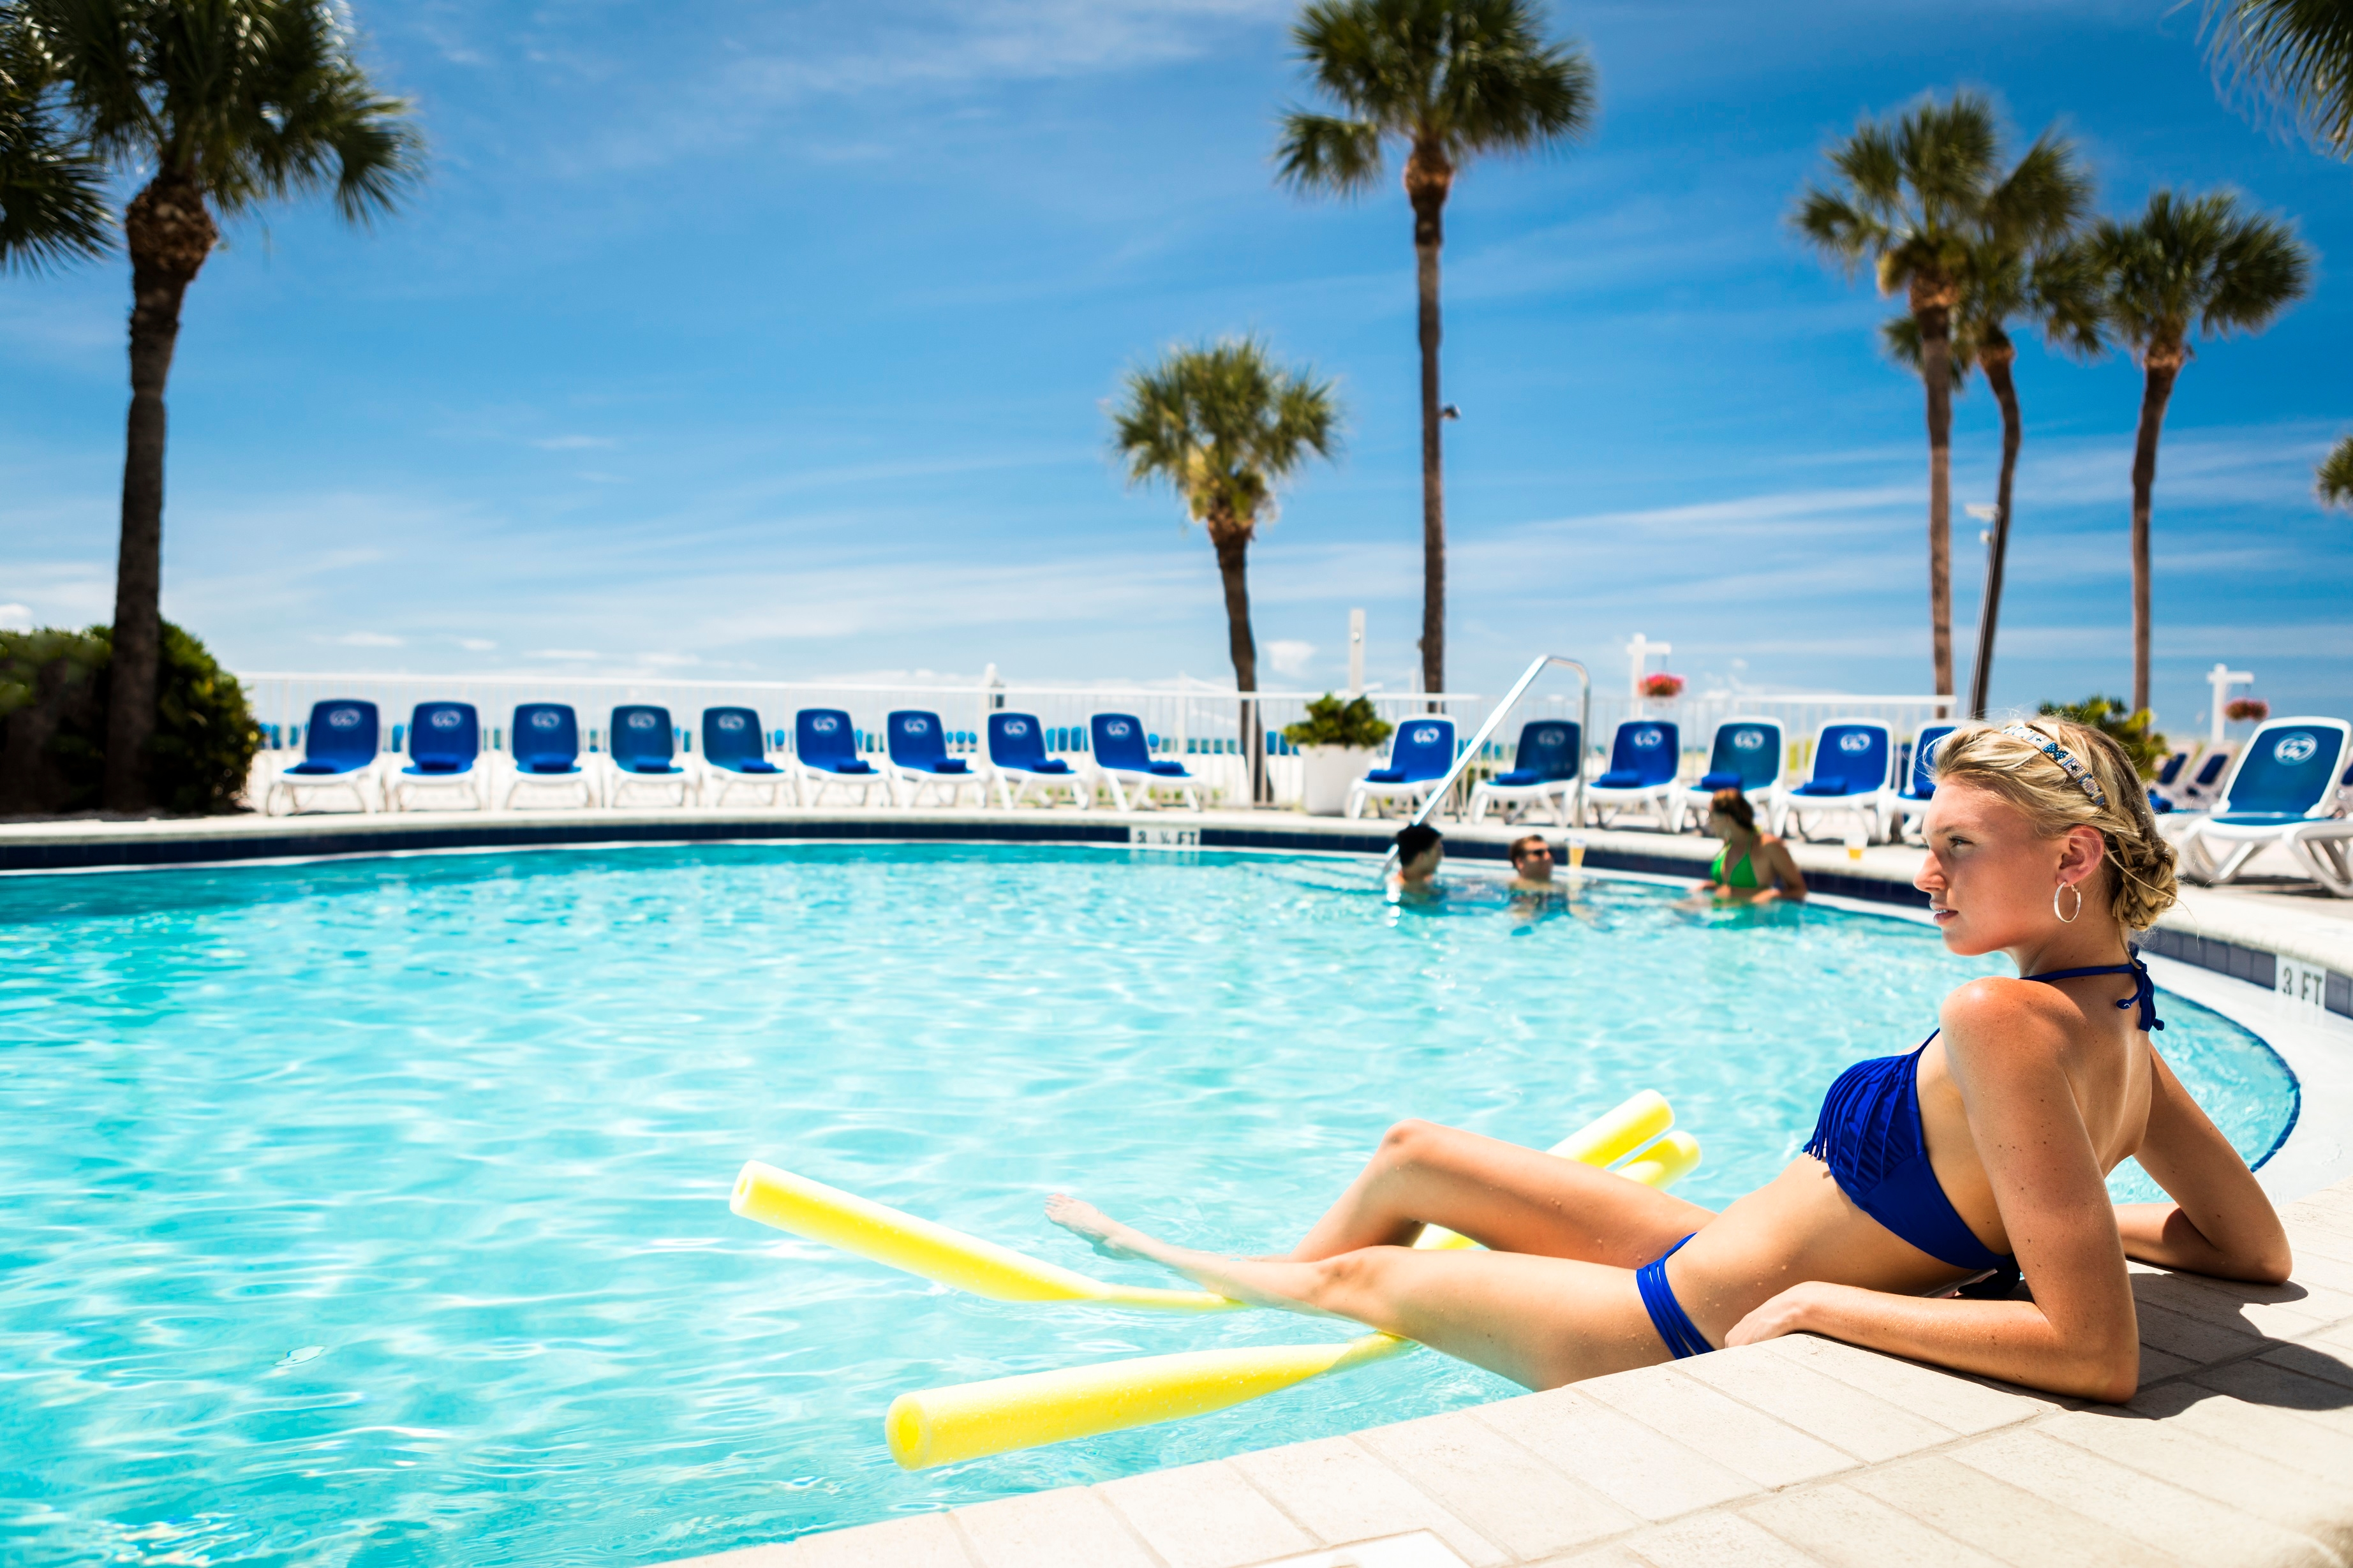 Relax and unwind at our adults-only pool.